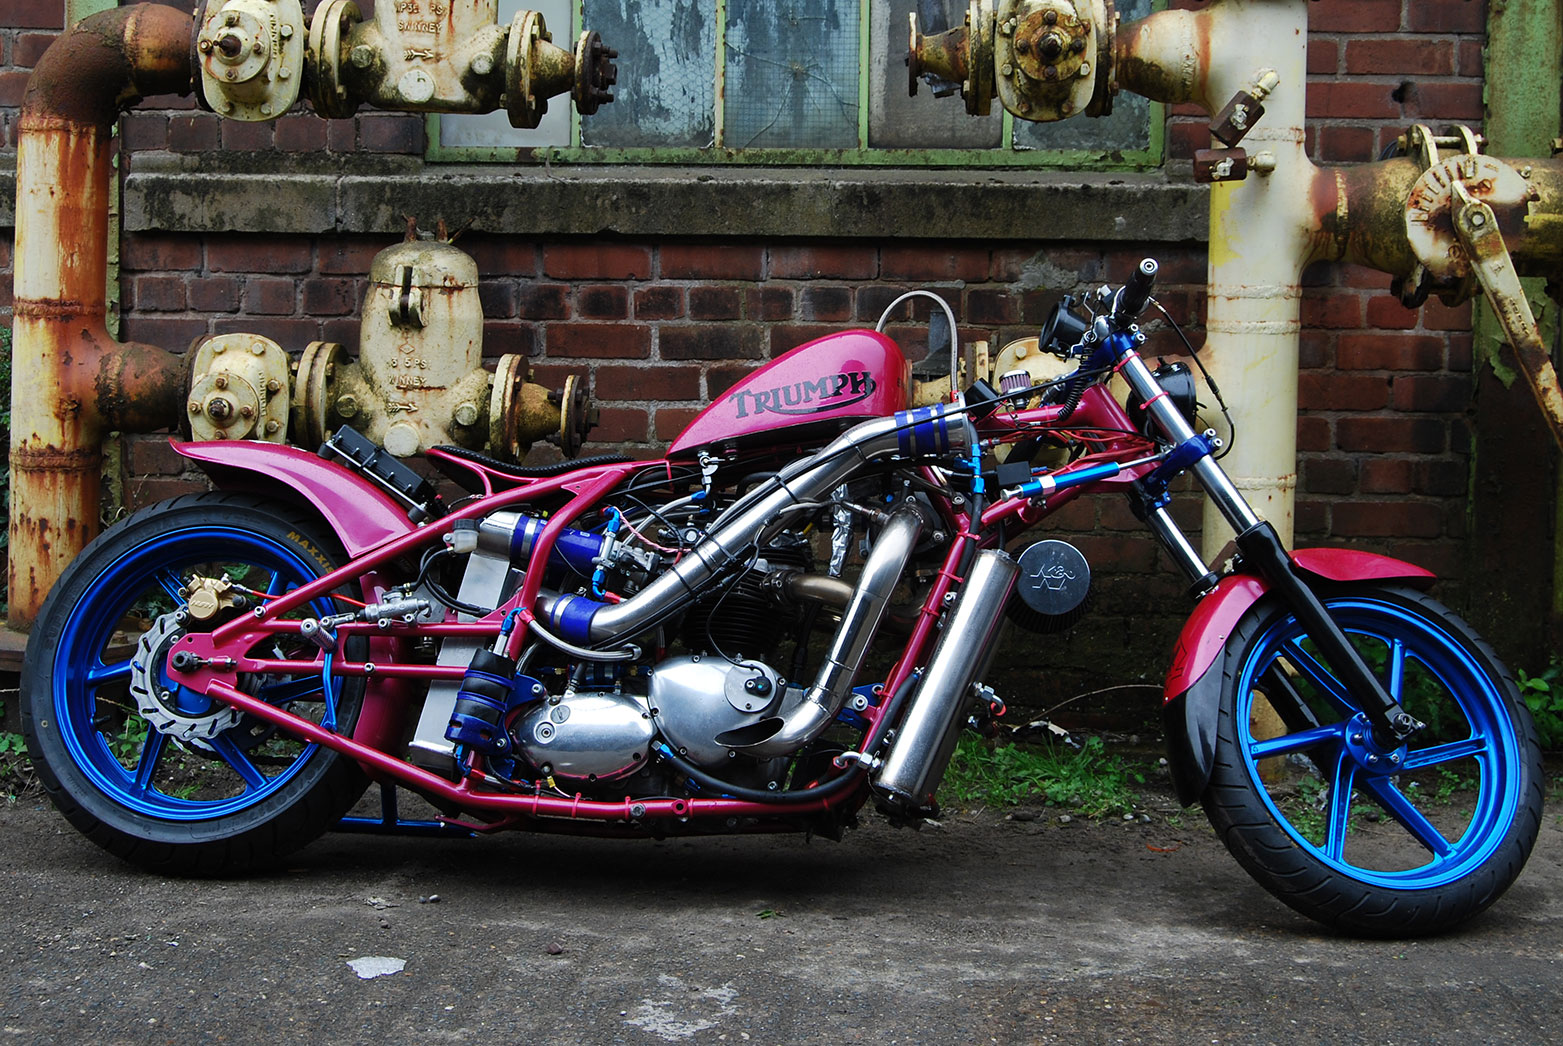 National Chopper Club - Celebrating over 45 years of custom motorcycling